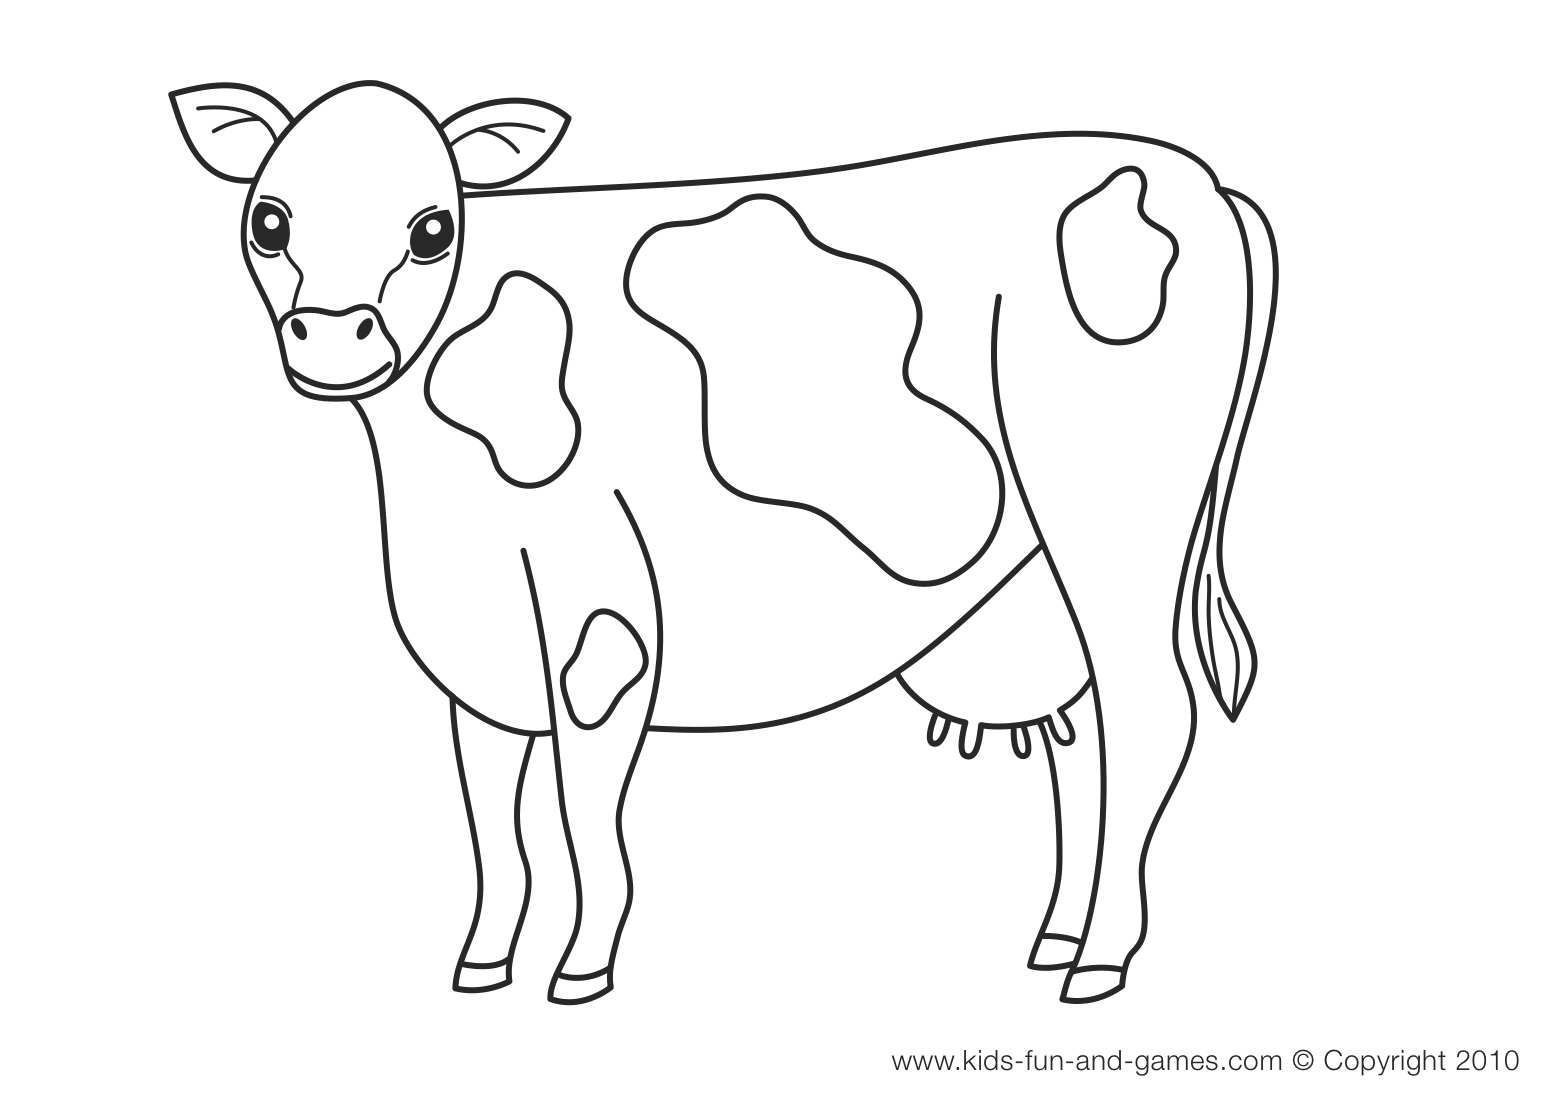 cute cow coloring pages just one of free kids printables at kids games central